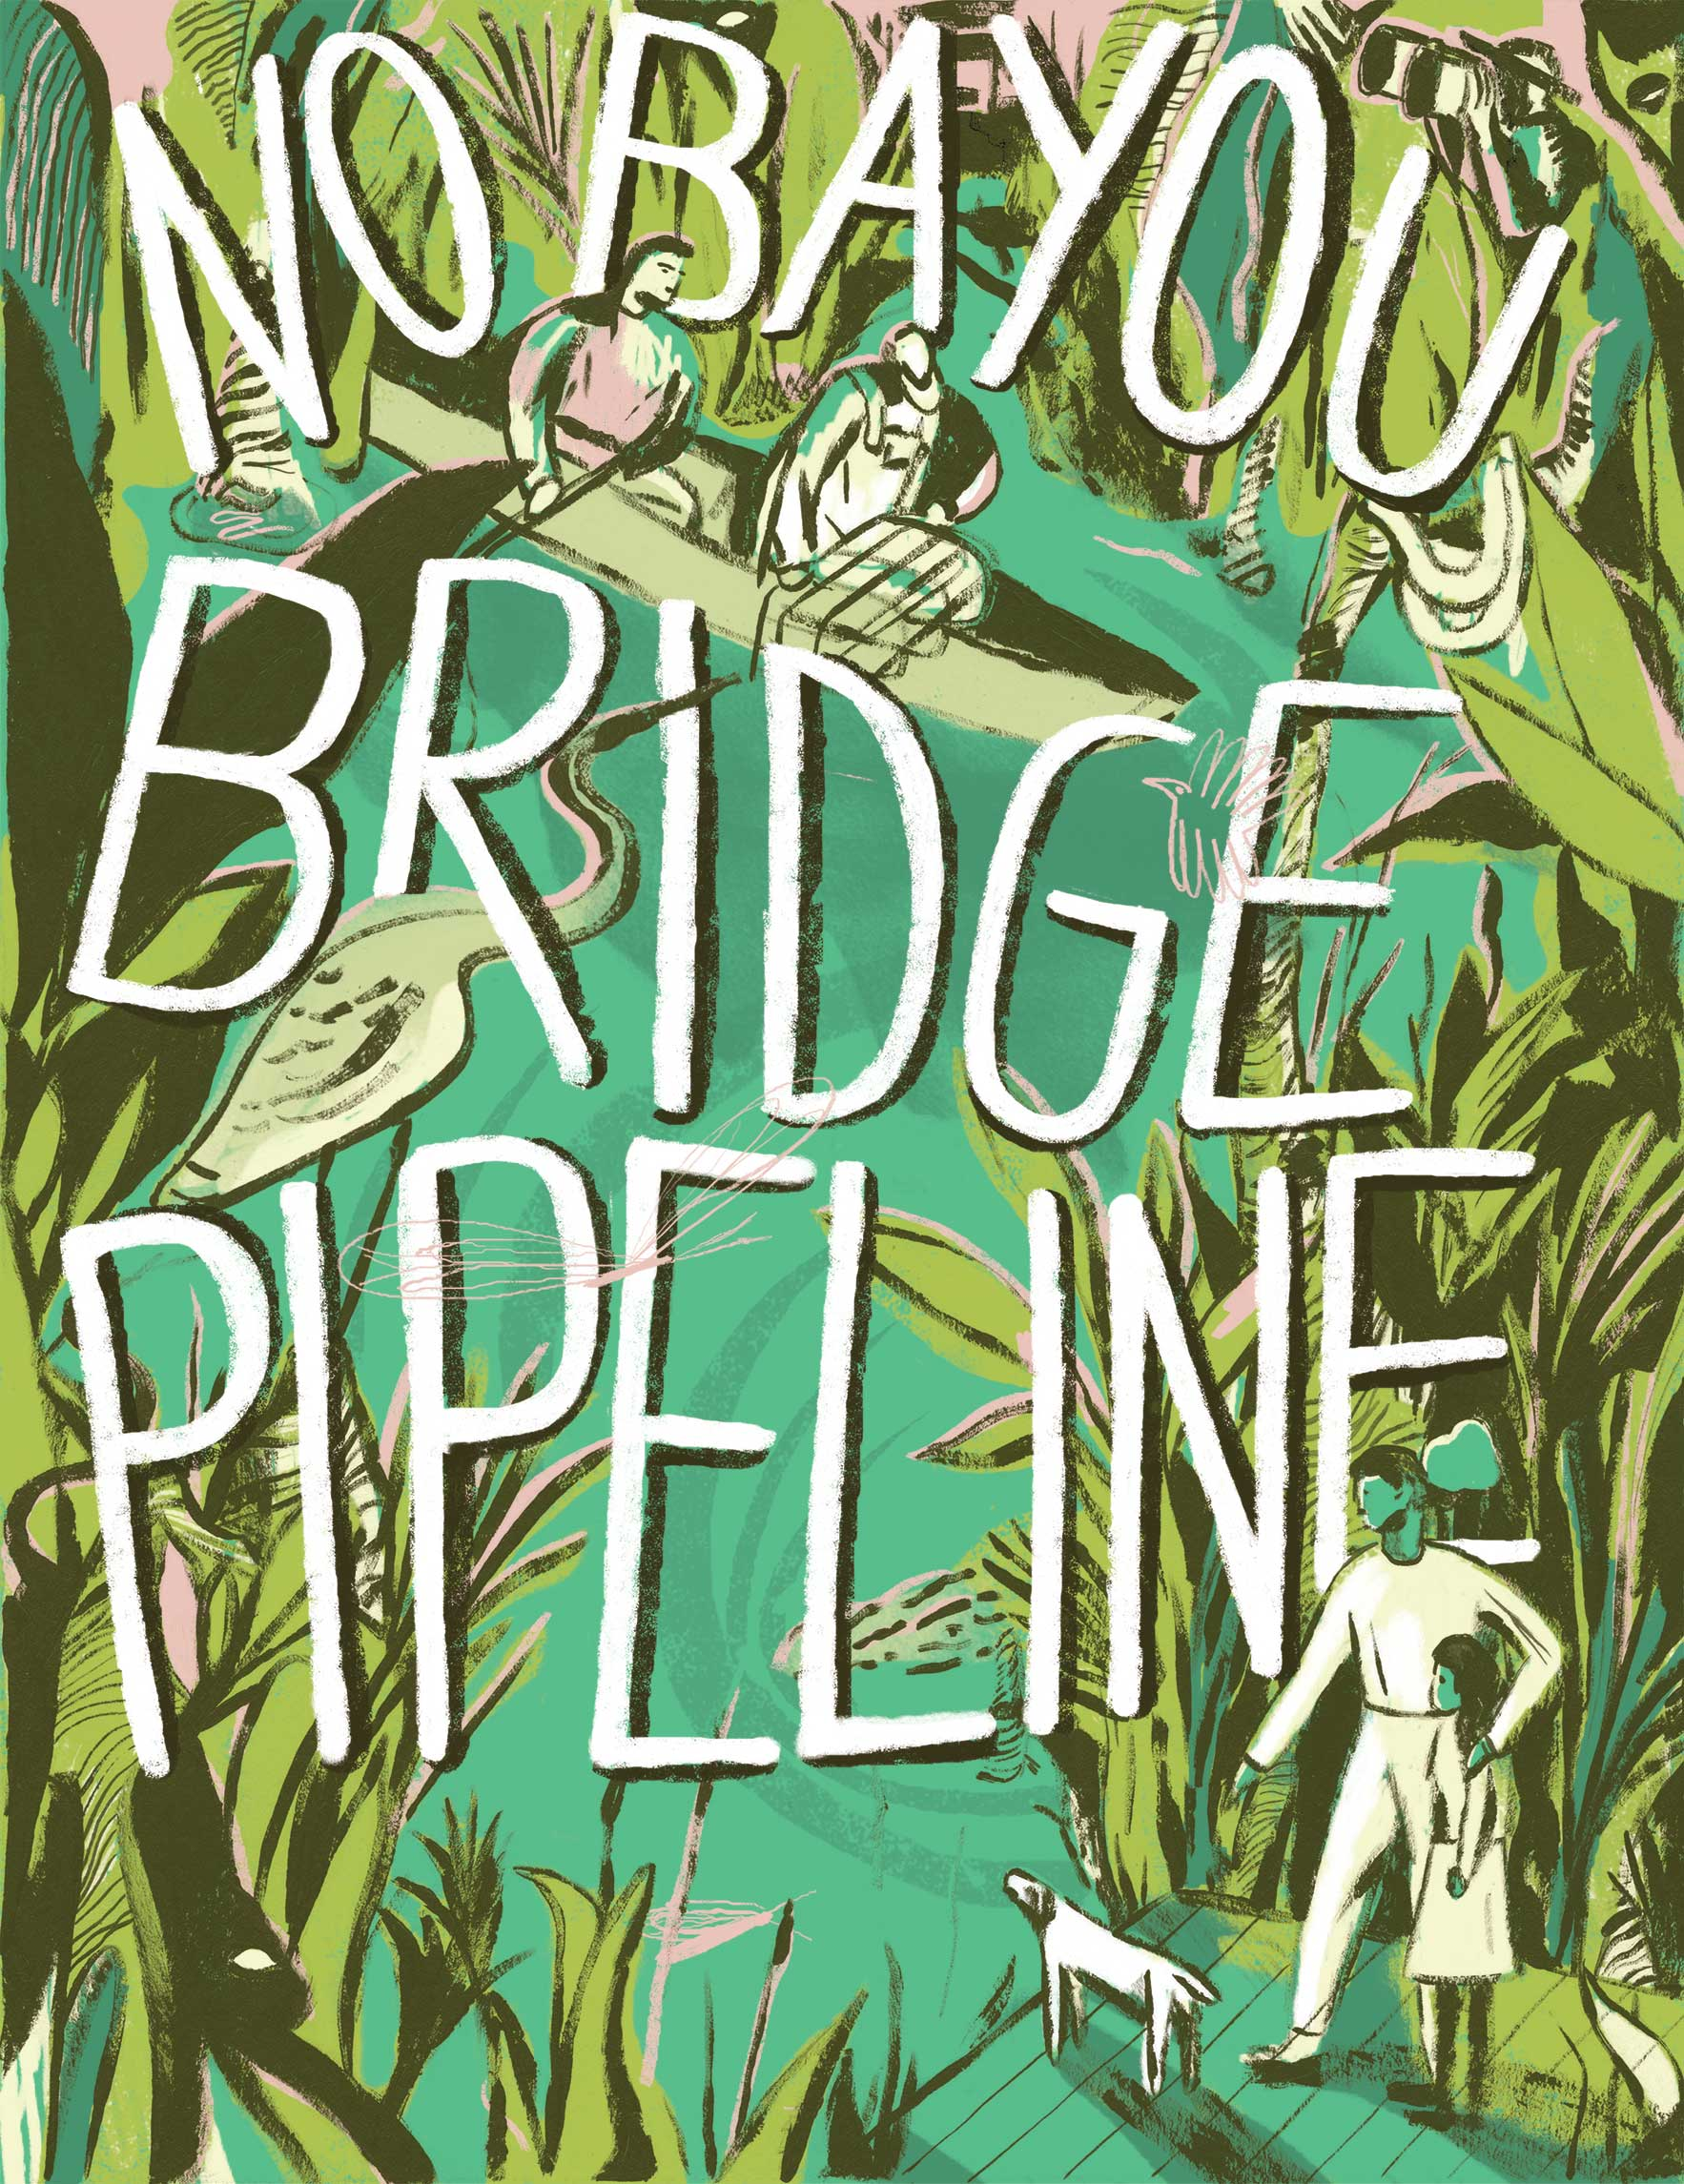 Image uses a green colour palette and reads: No Bayou Bridge Pipeline in uppercase hand lettered white letters. Two people ride in a boat at the top centre and in the bottom right, you see a couple standing on a deck along with a white dog.